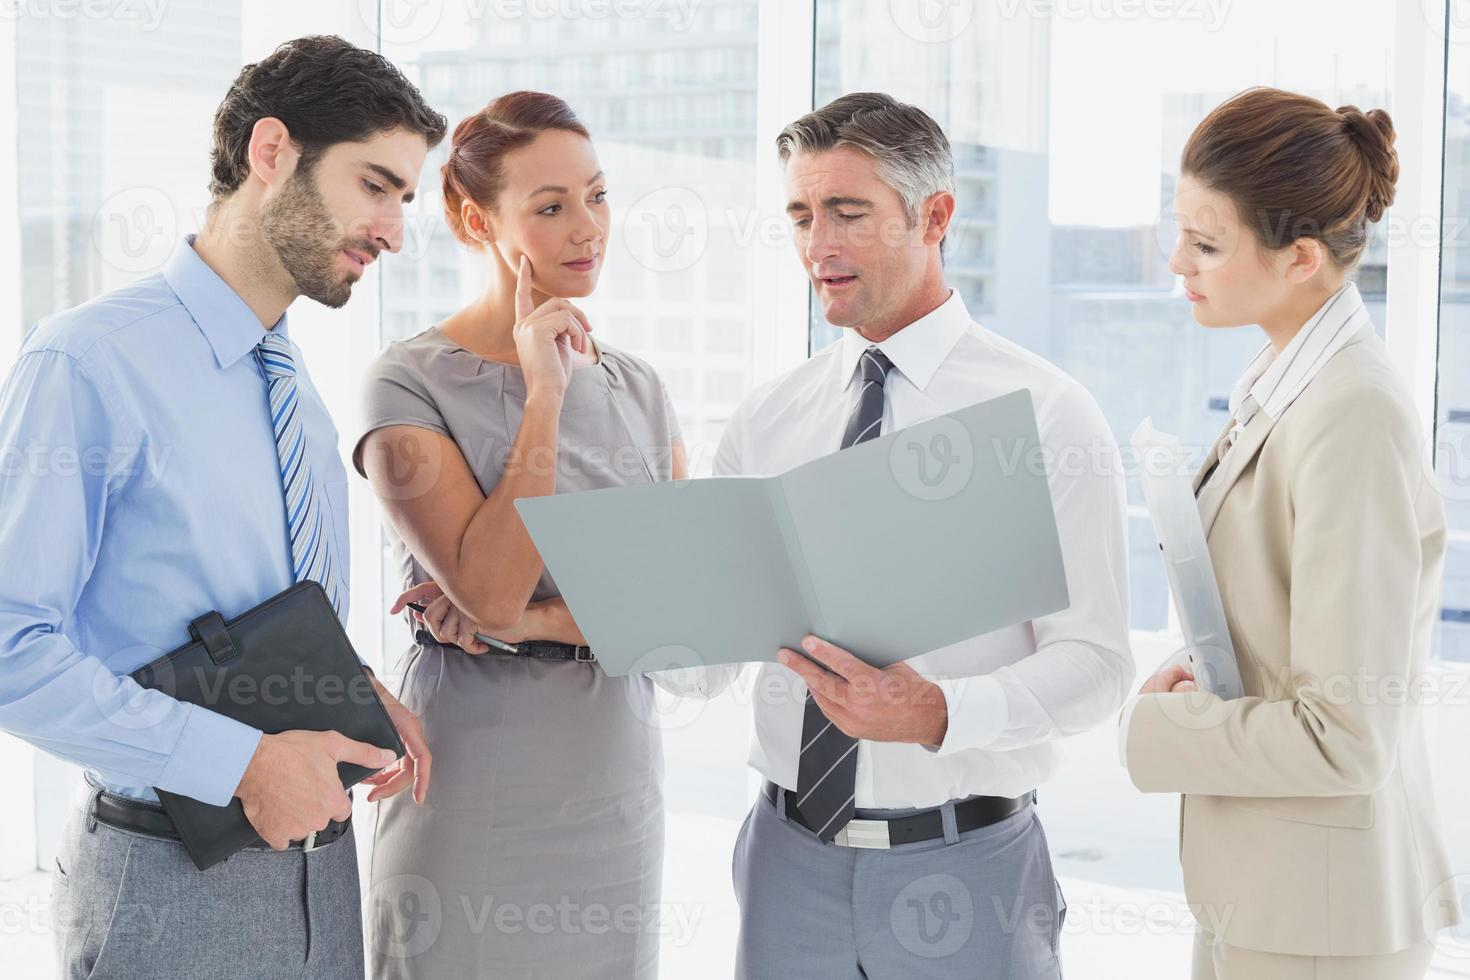 Employees having a business meeting photo